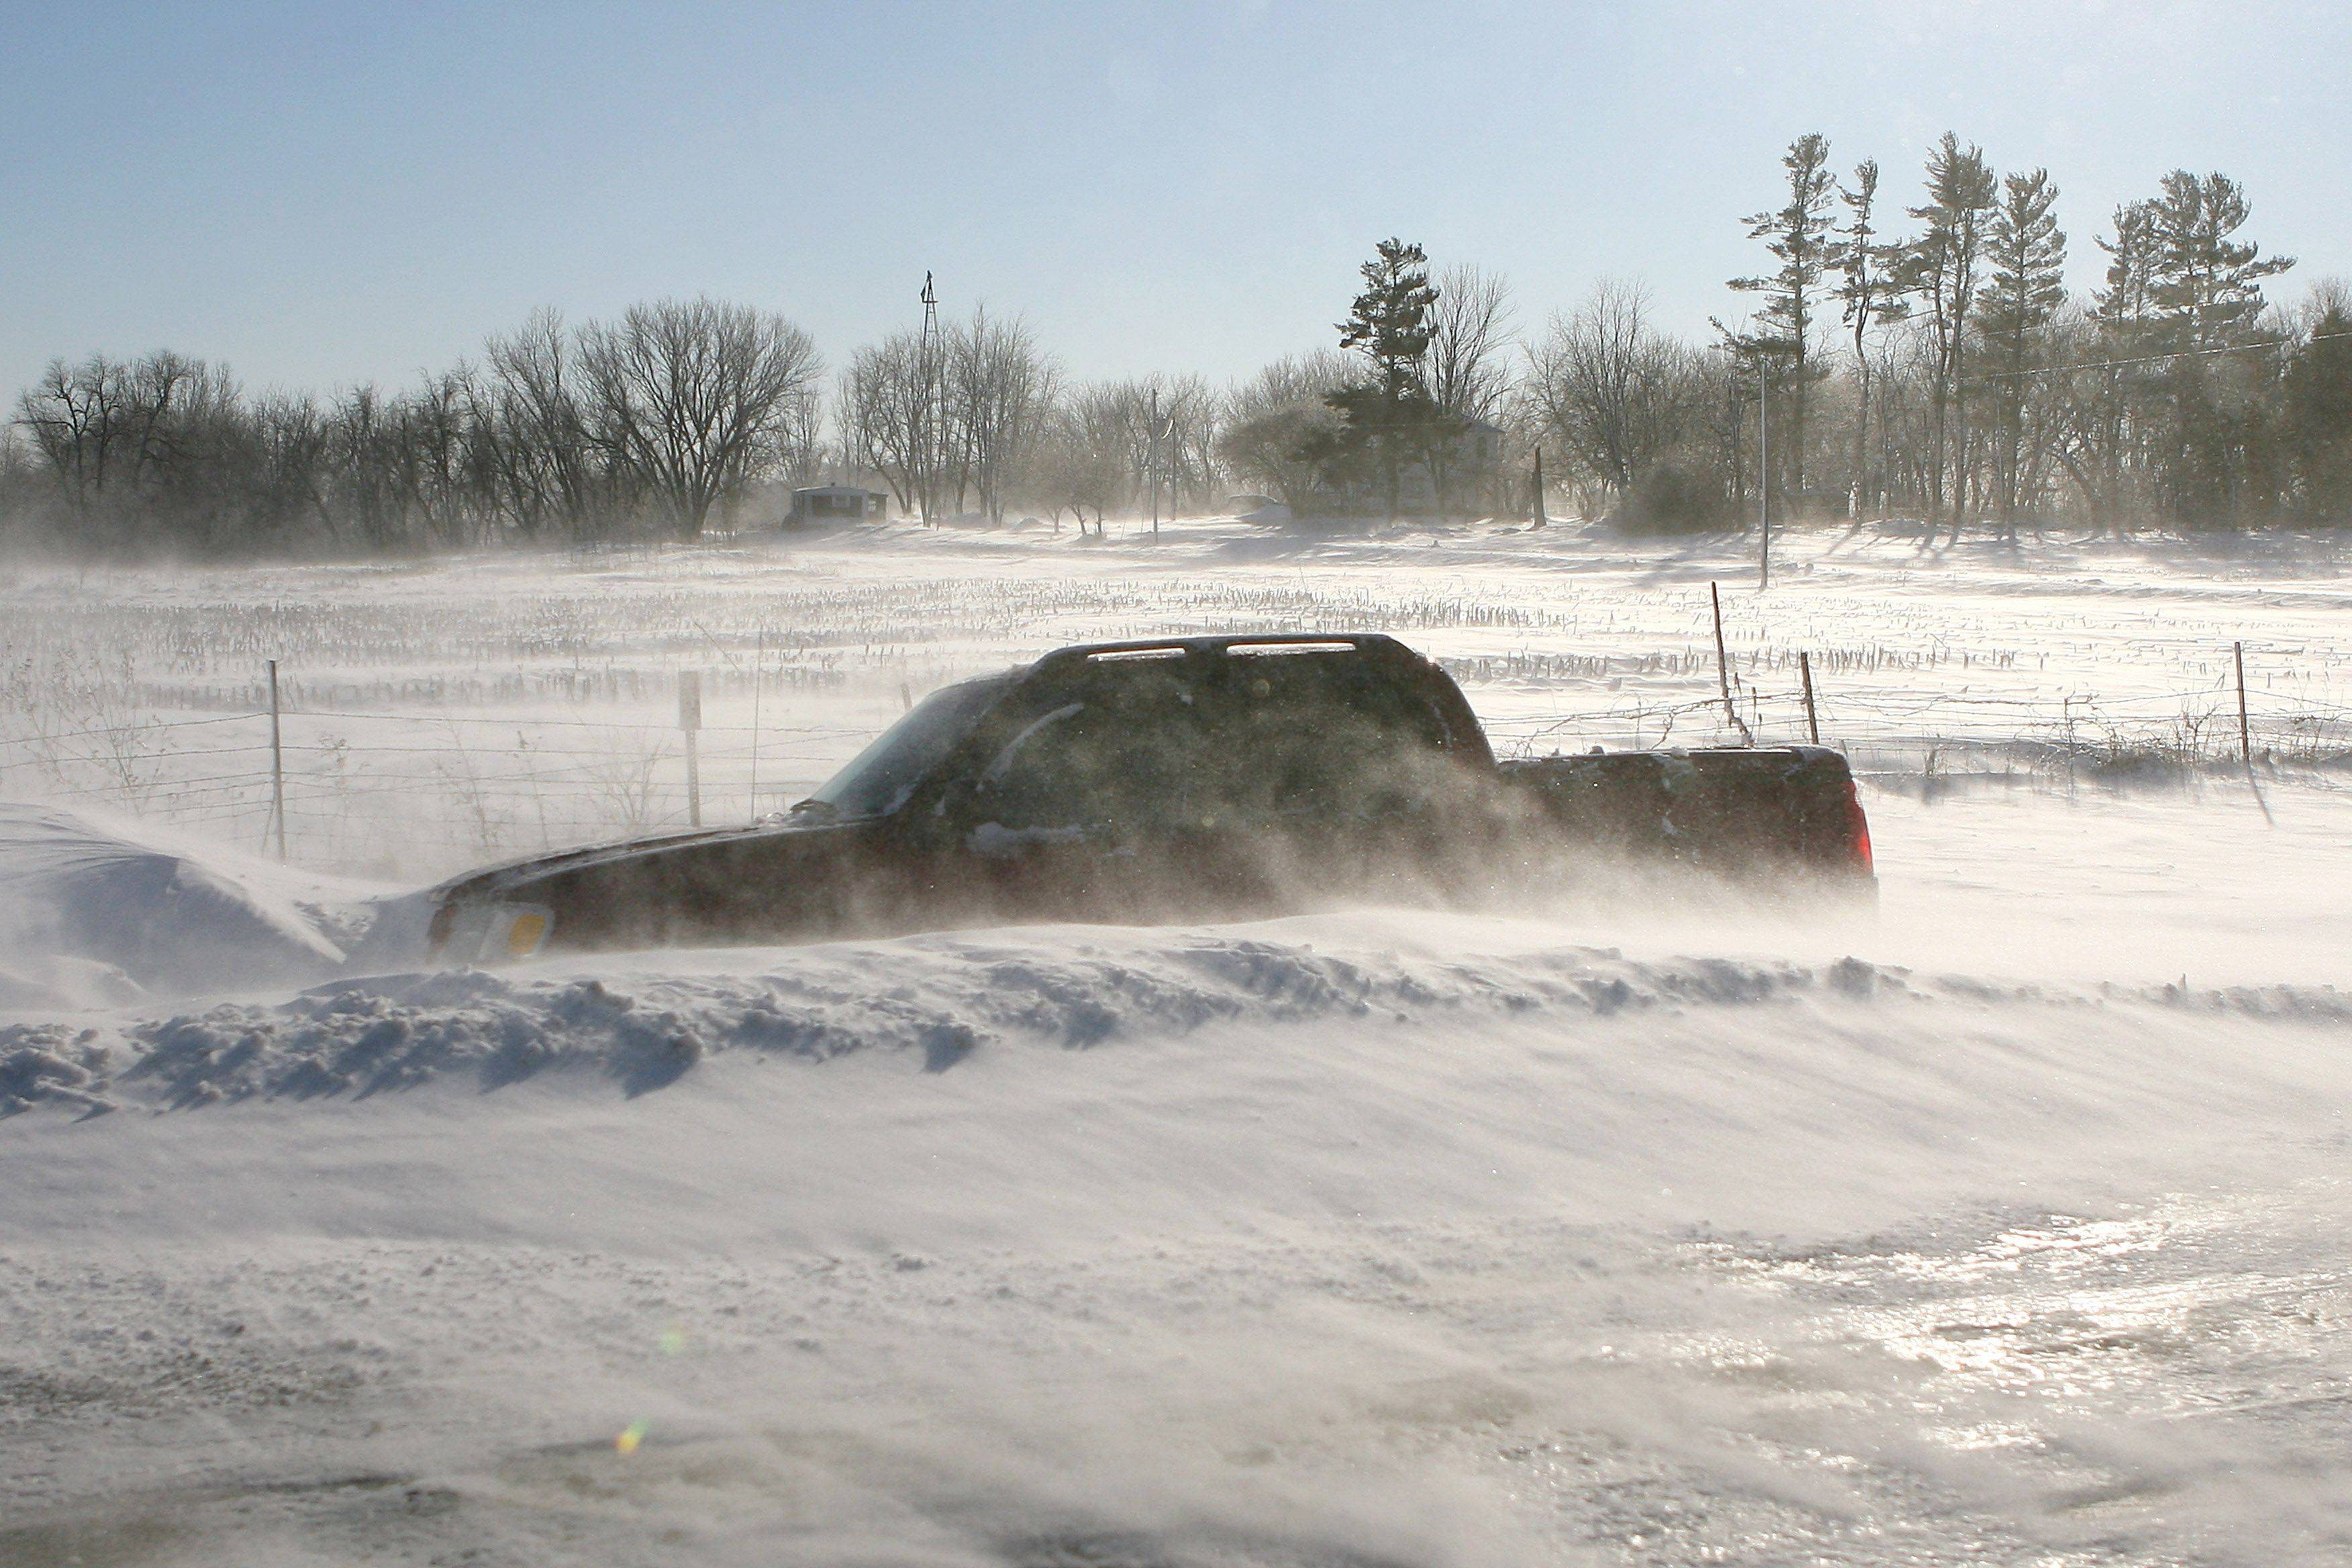 Cars throughout the Midwest were stranded in their cars as winter storms dumped several inches of snow and high winds caused high drifts, making some roads impassable.